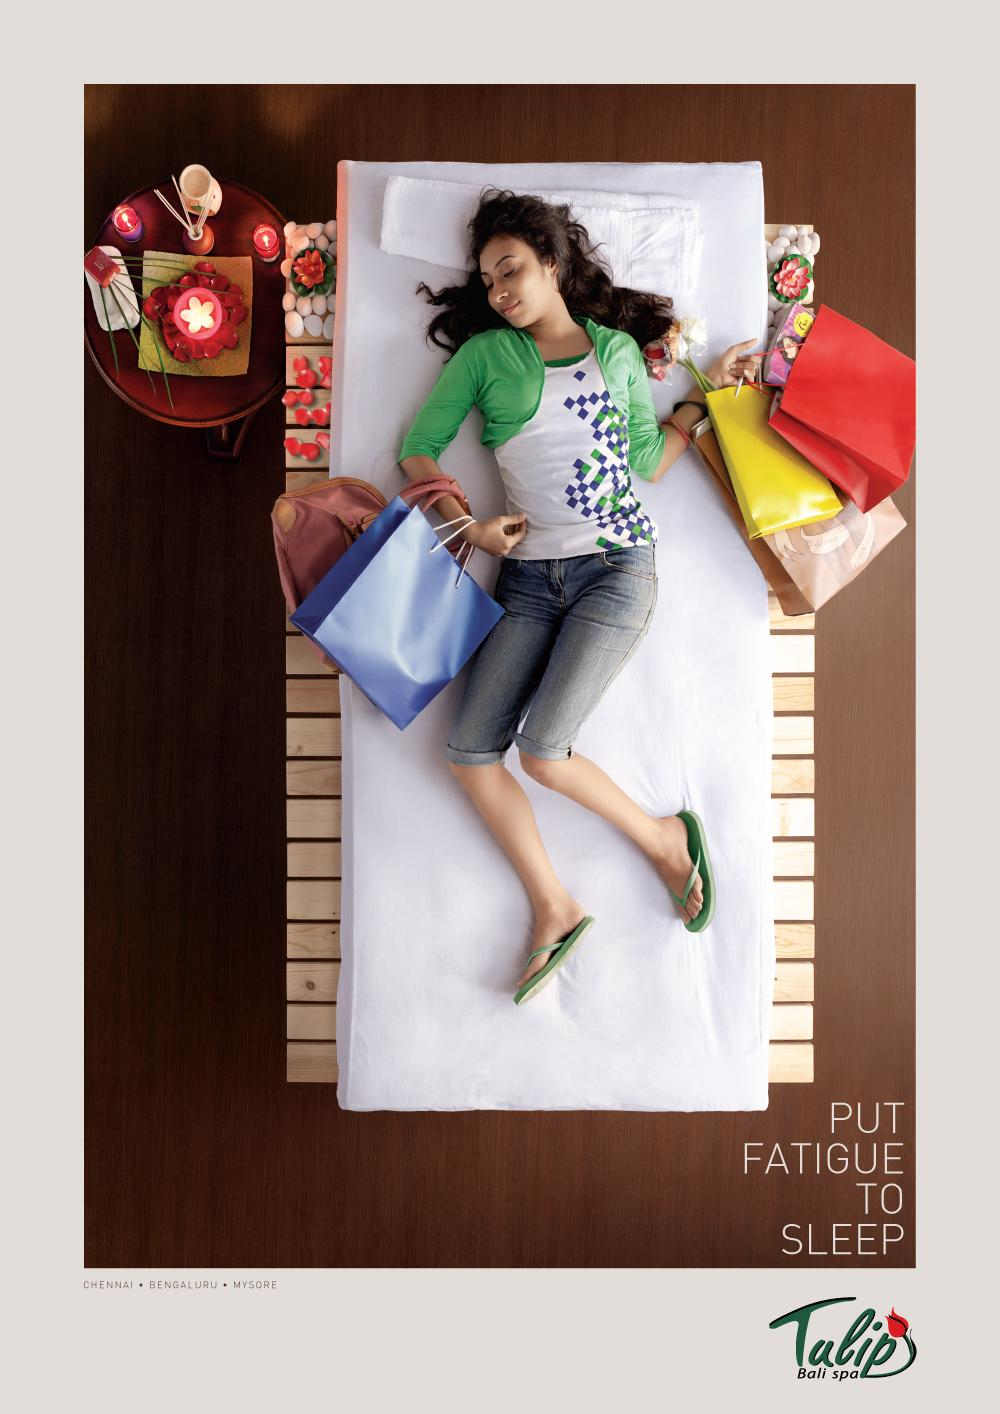 Tulip Bali Spa Print Ad -  Put fatigue to sleep